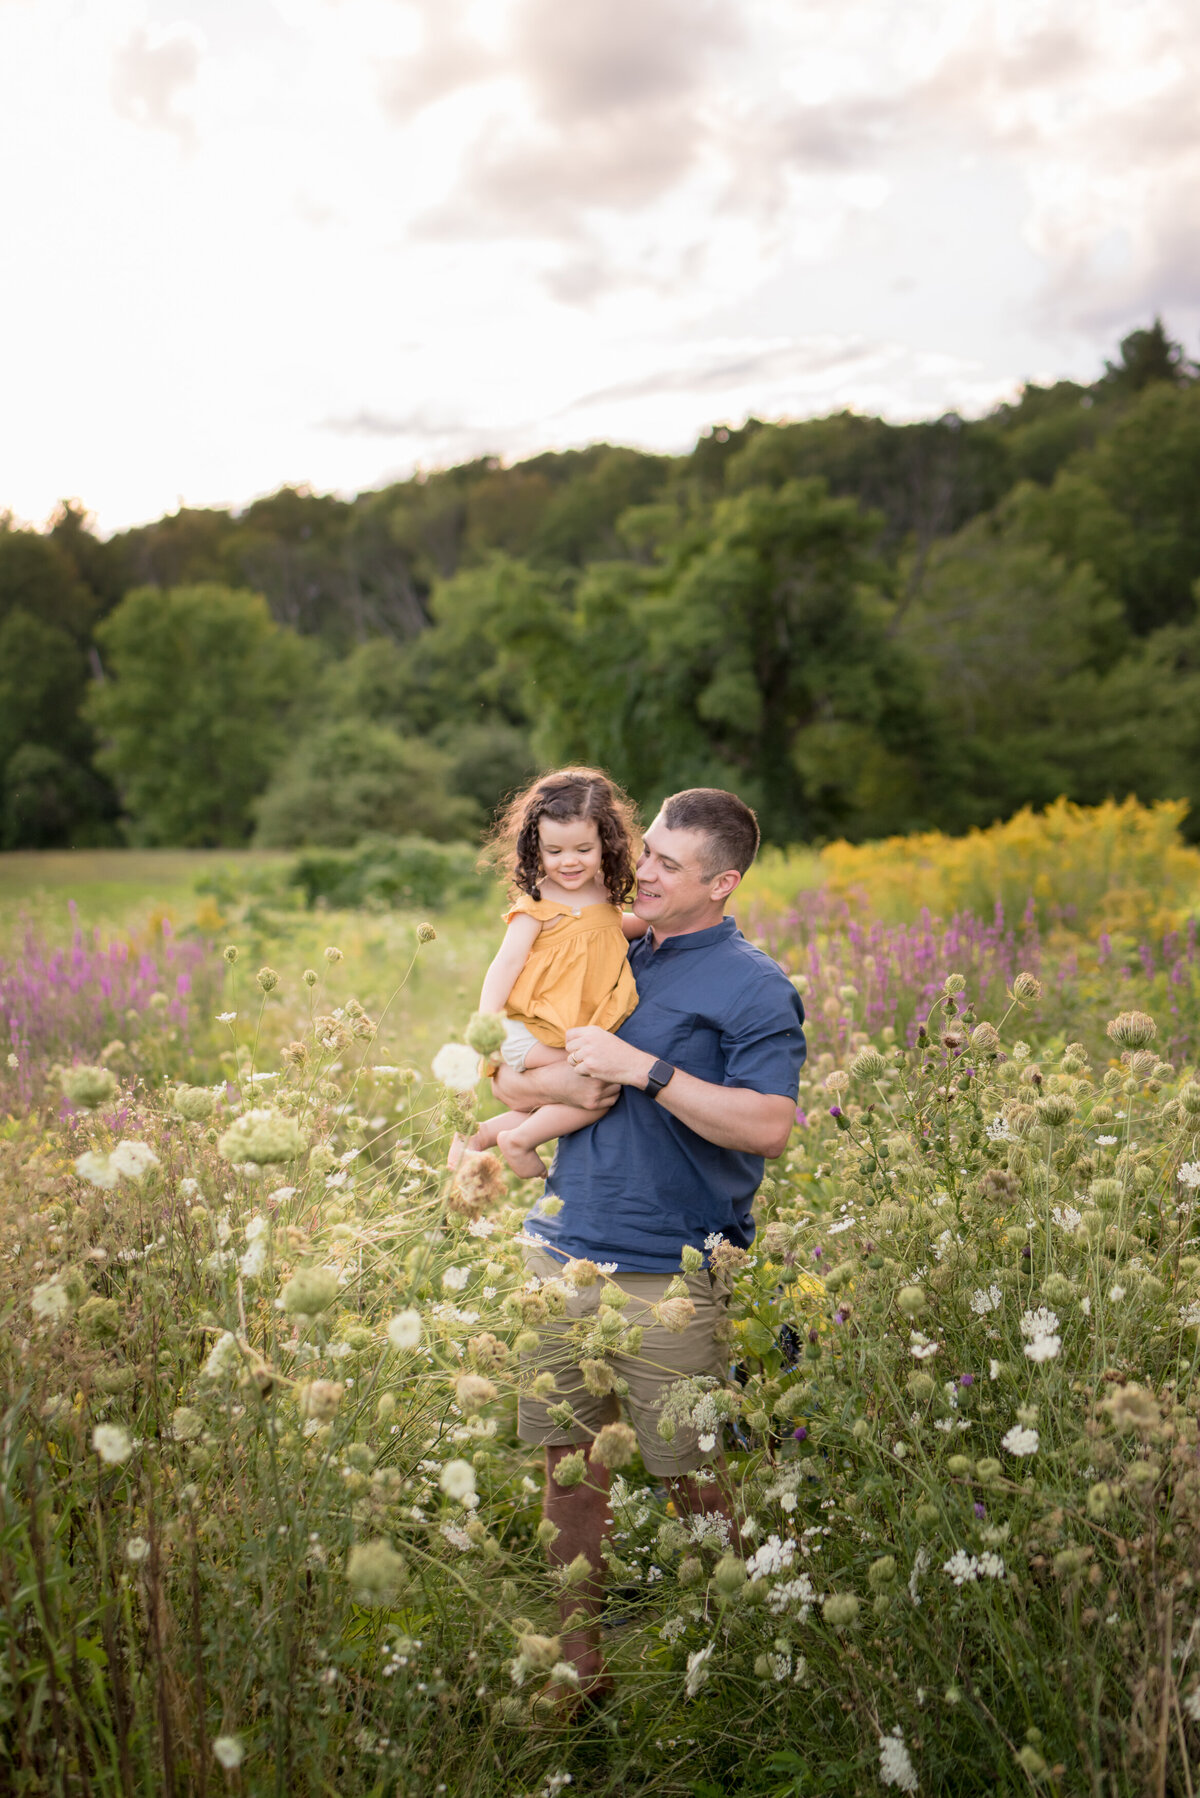 Boston-family-photographer-bella-wang-photography-Lifestyle-session-outdoor-wildflower-83